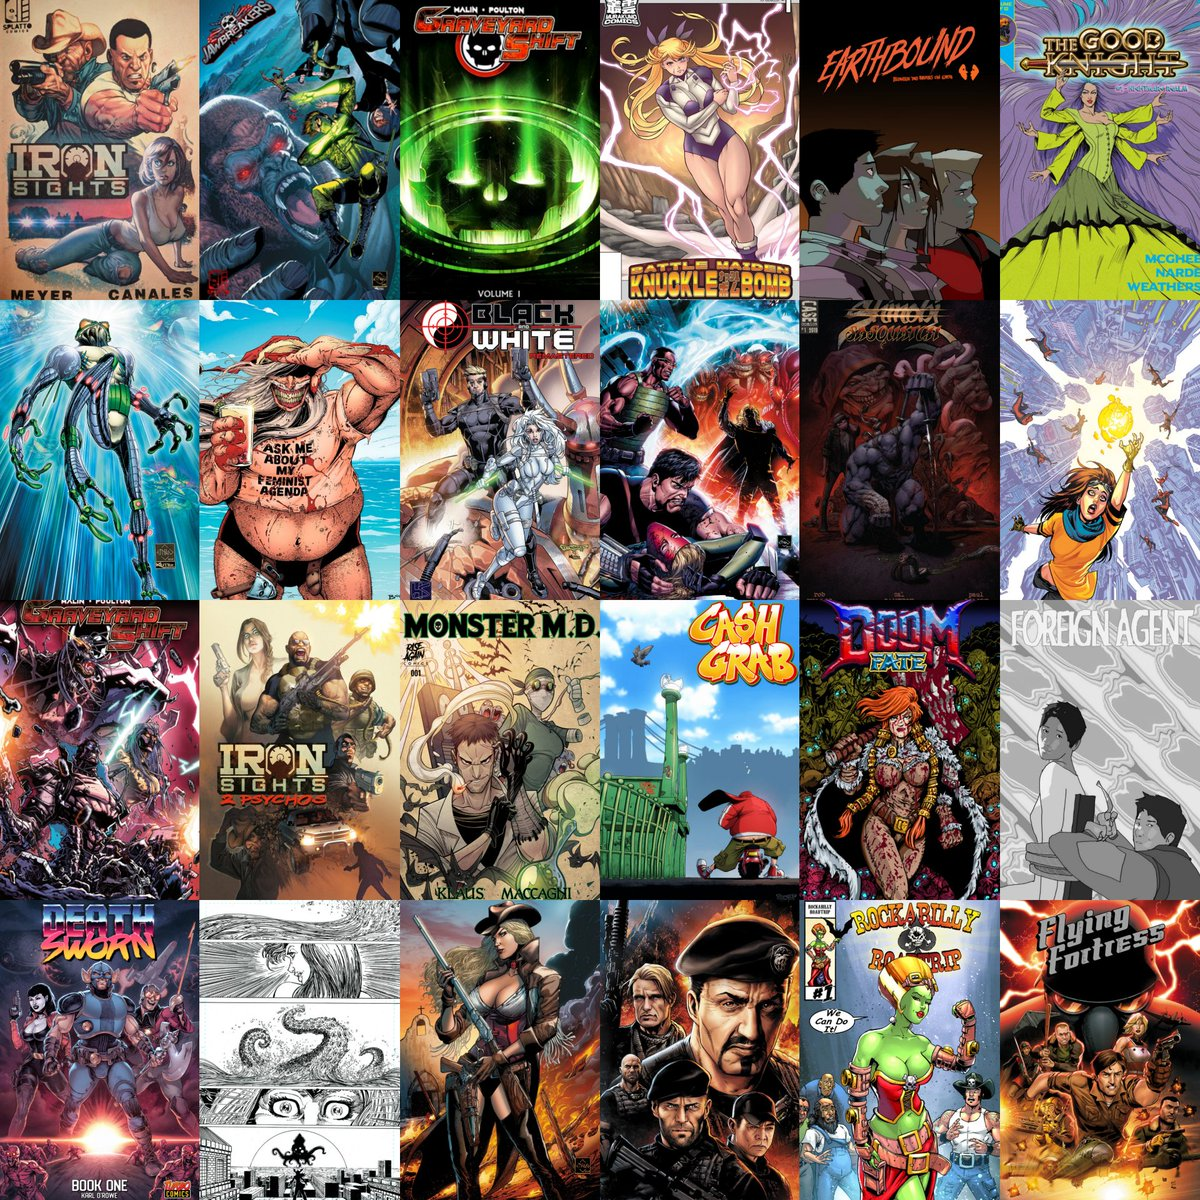 I love this ever growing, talented & fun community  #ComicsGate #comicbooks pic.twitter.com/o5n0FOGTTi